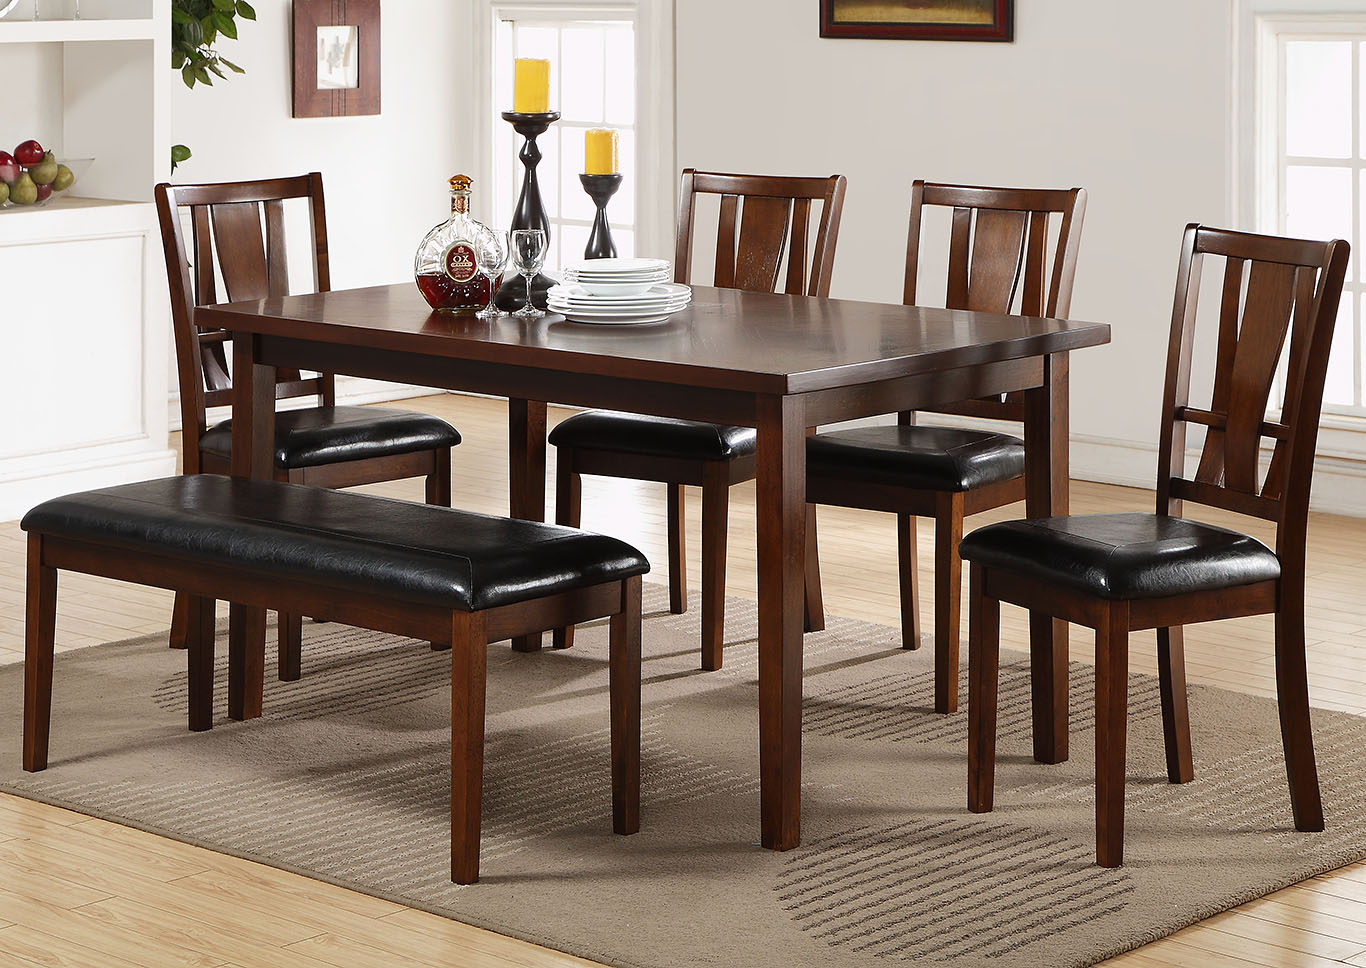 Logan 6PC Dining Rm Sold As Set Onl,Huffman Koos